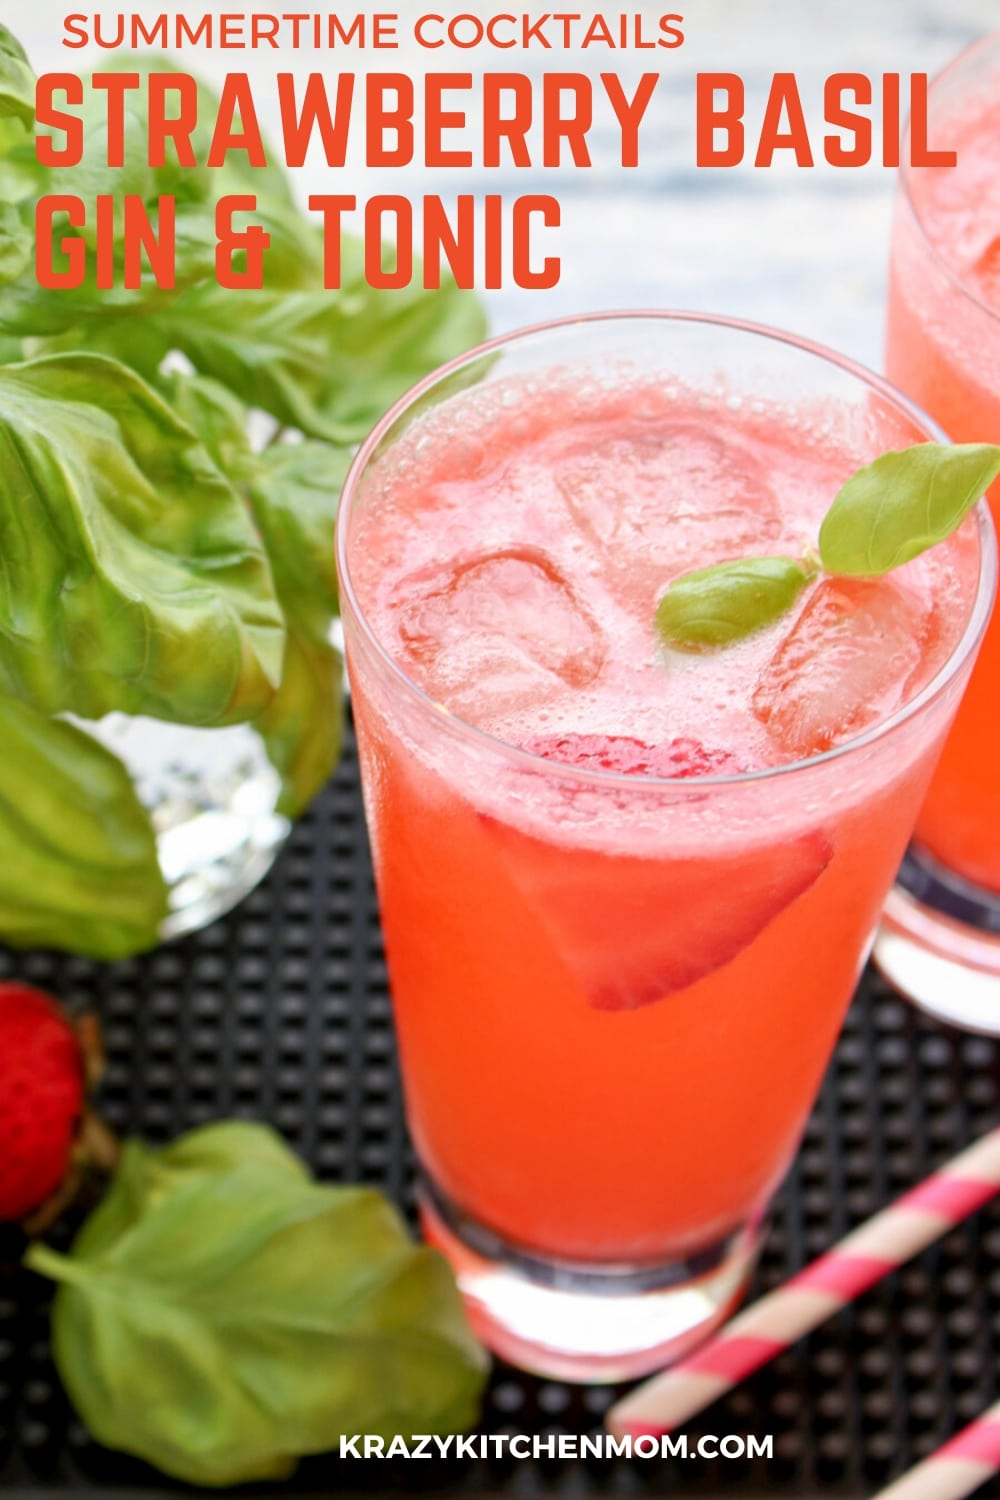 STRAWBERRY BASIL GIN AND TONIC - Refreshing, sweet from the strawberries, pleasingly pungent from the fresh basil, and fizzy from the tonic water. via @krazykitchenmom